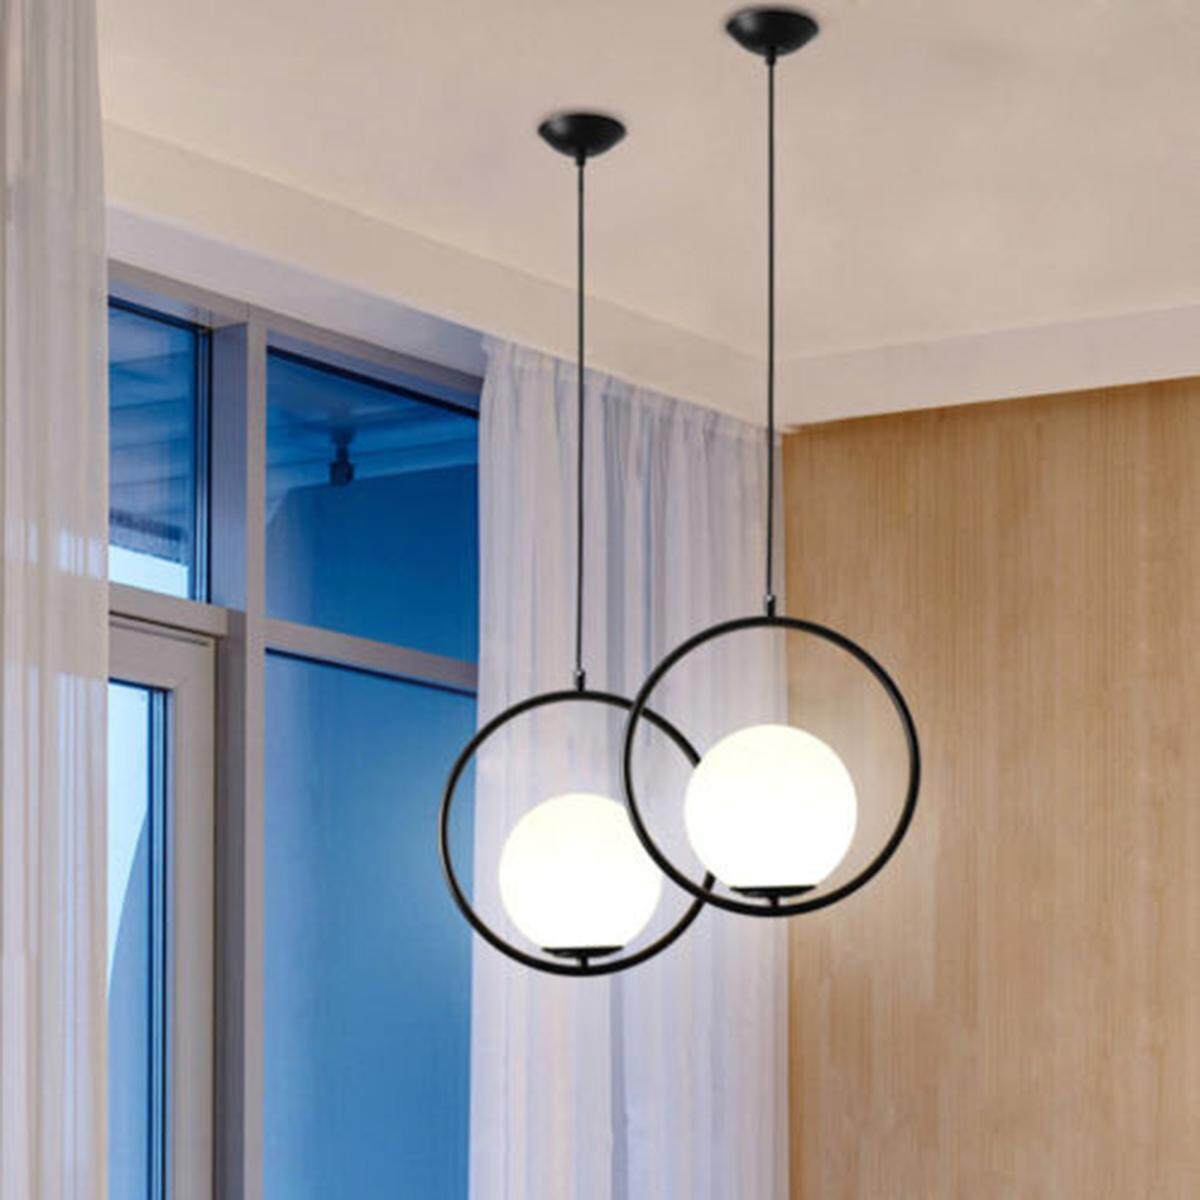 Modern Globe Ceiling Pendant Light Lamp Glass Shade Metal Ring Home Bar Decor Singapore